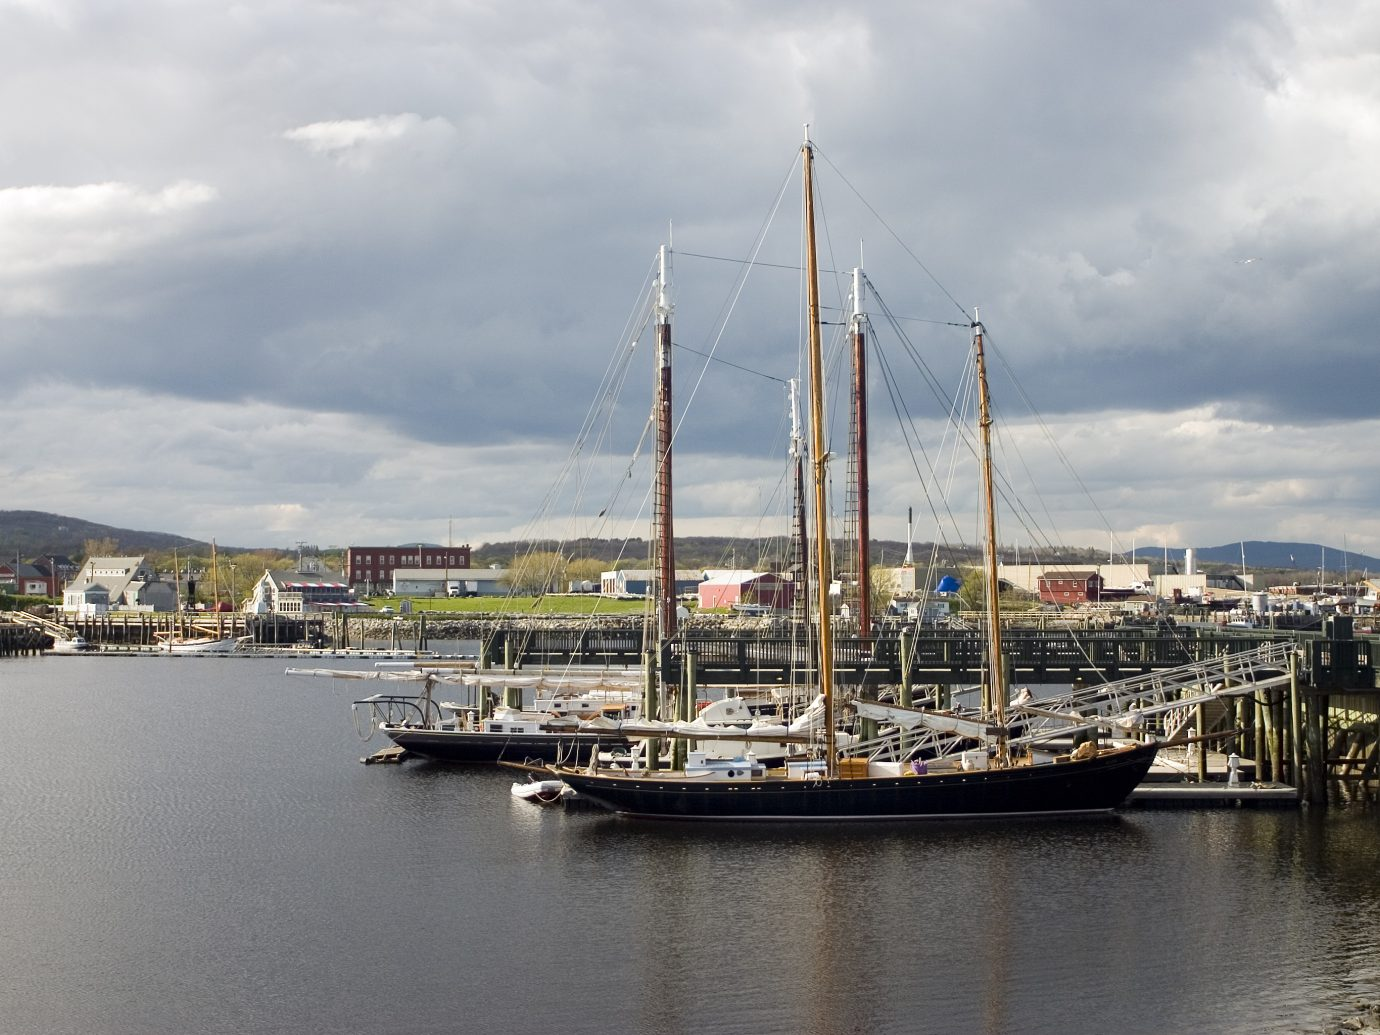 Three masted schooners docked in Rockland Harbor, Maine.